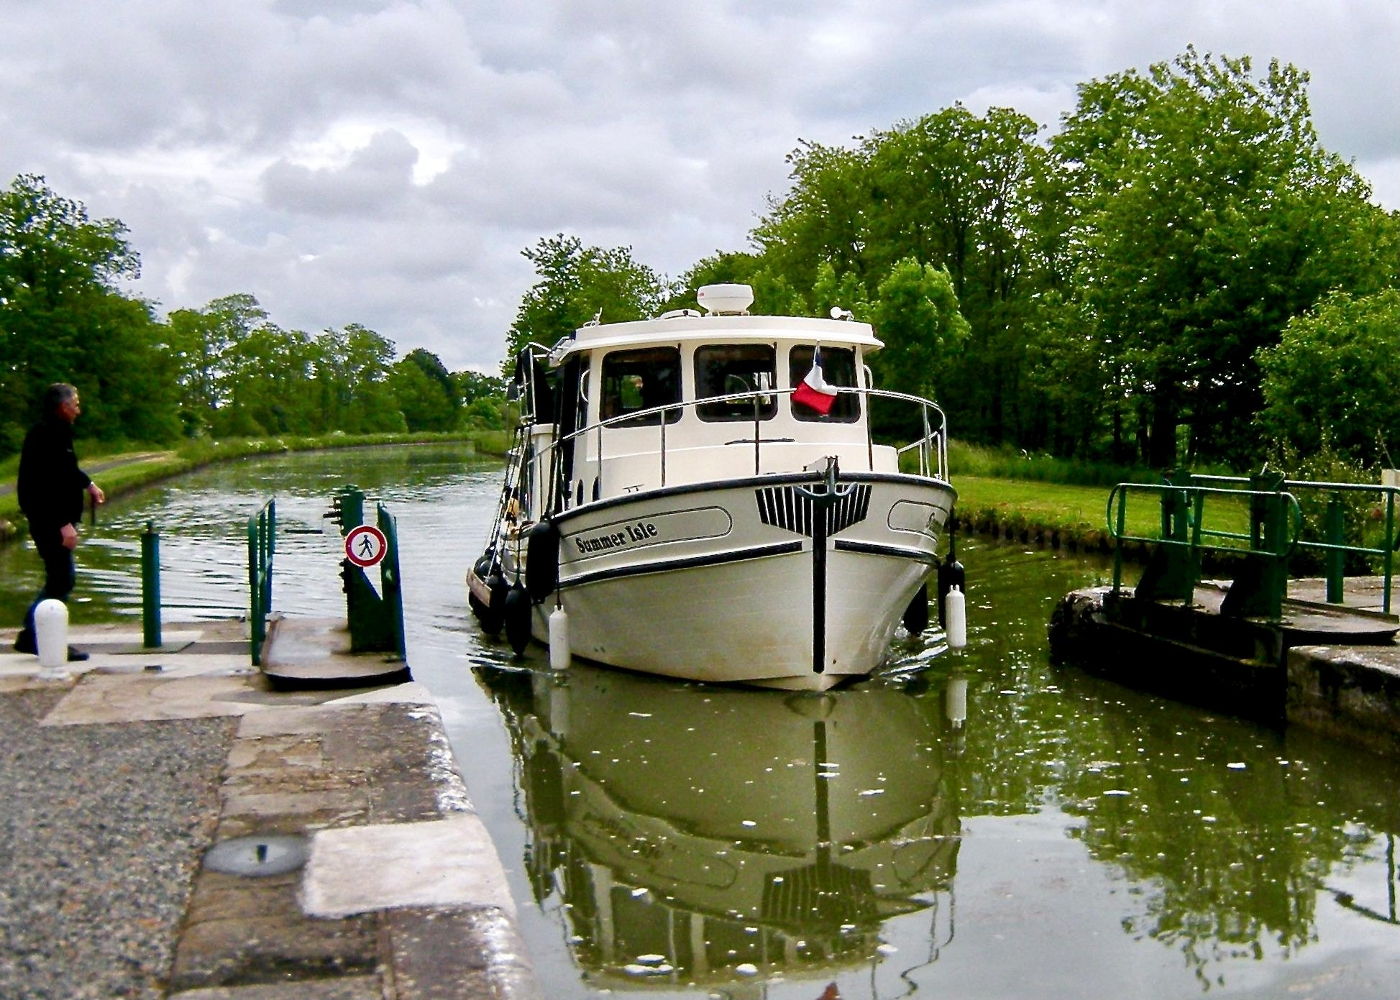 2001 Nordic Tugs 32 Pilothouse, Locks in France